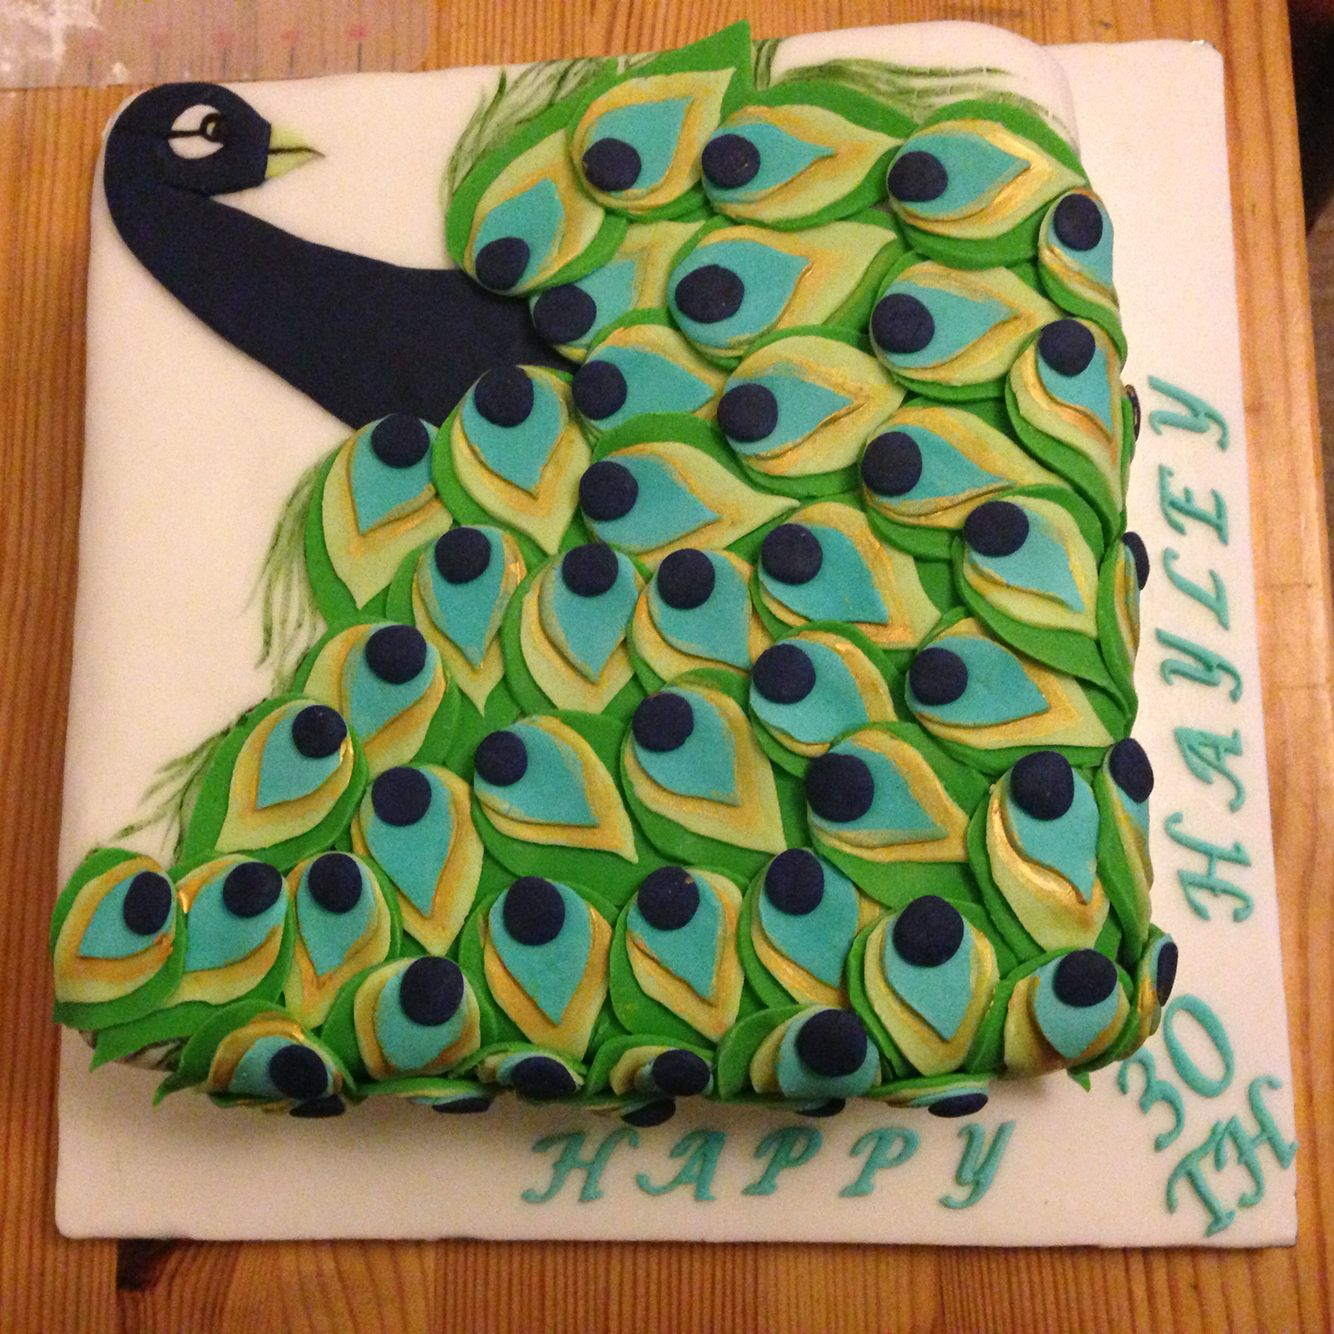 Peacock Th Birthday Cake Peackock Cakes Pinterest Th - Peacock birthday cake